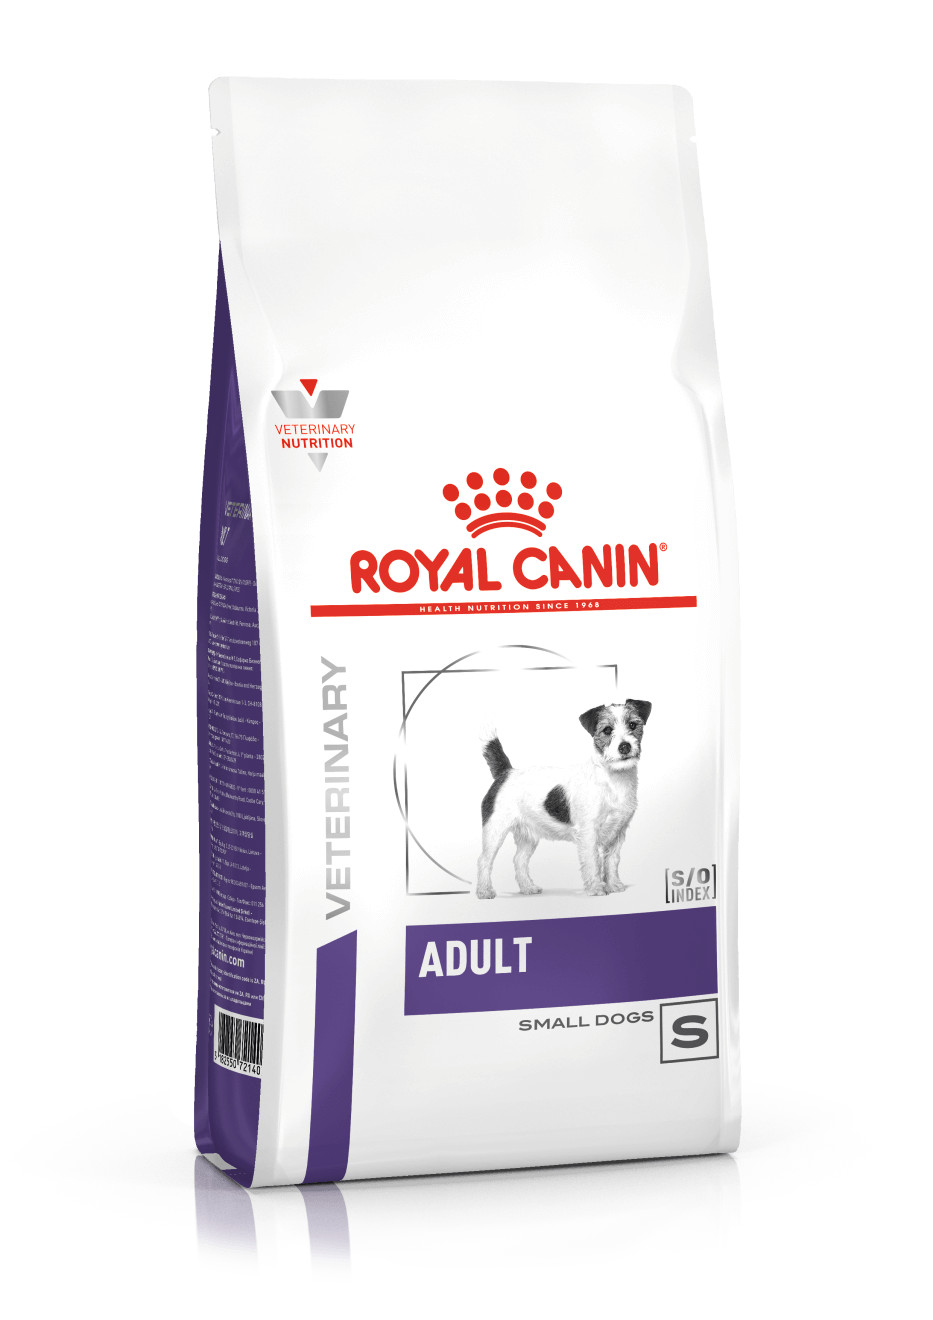 Royal Canin Veterinary Adult Small Dogs pour chien